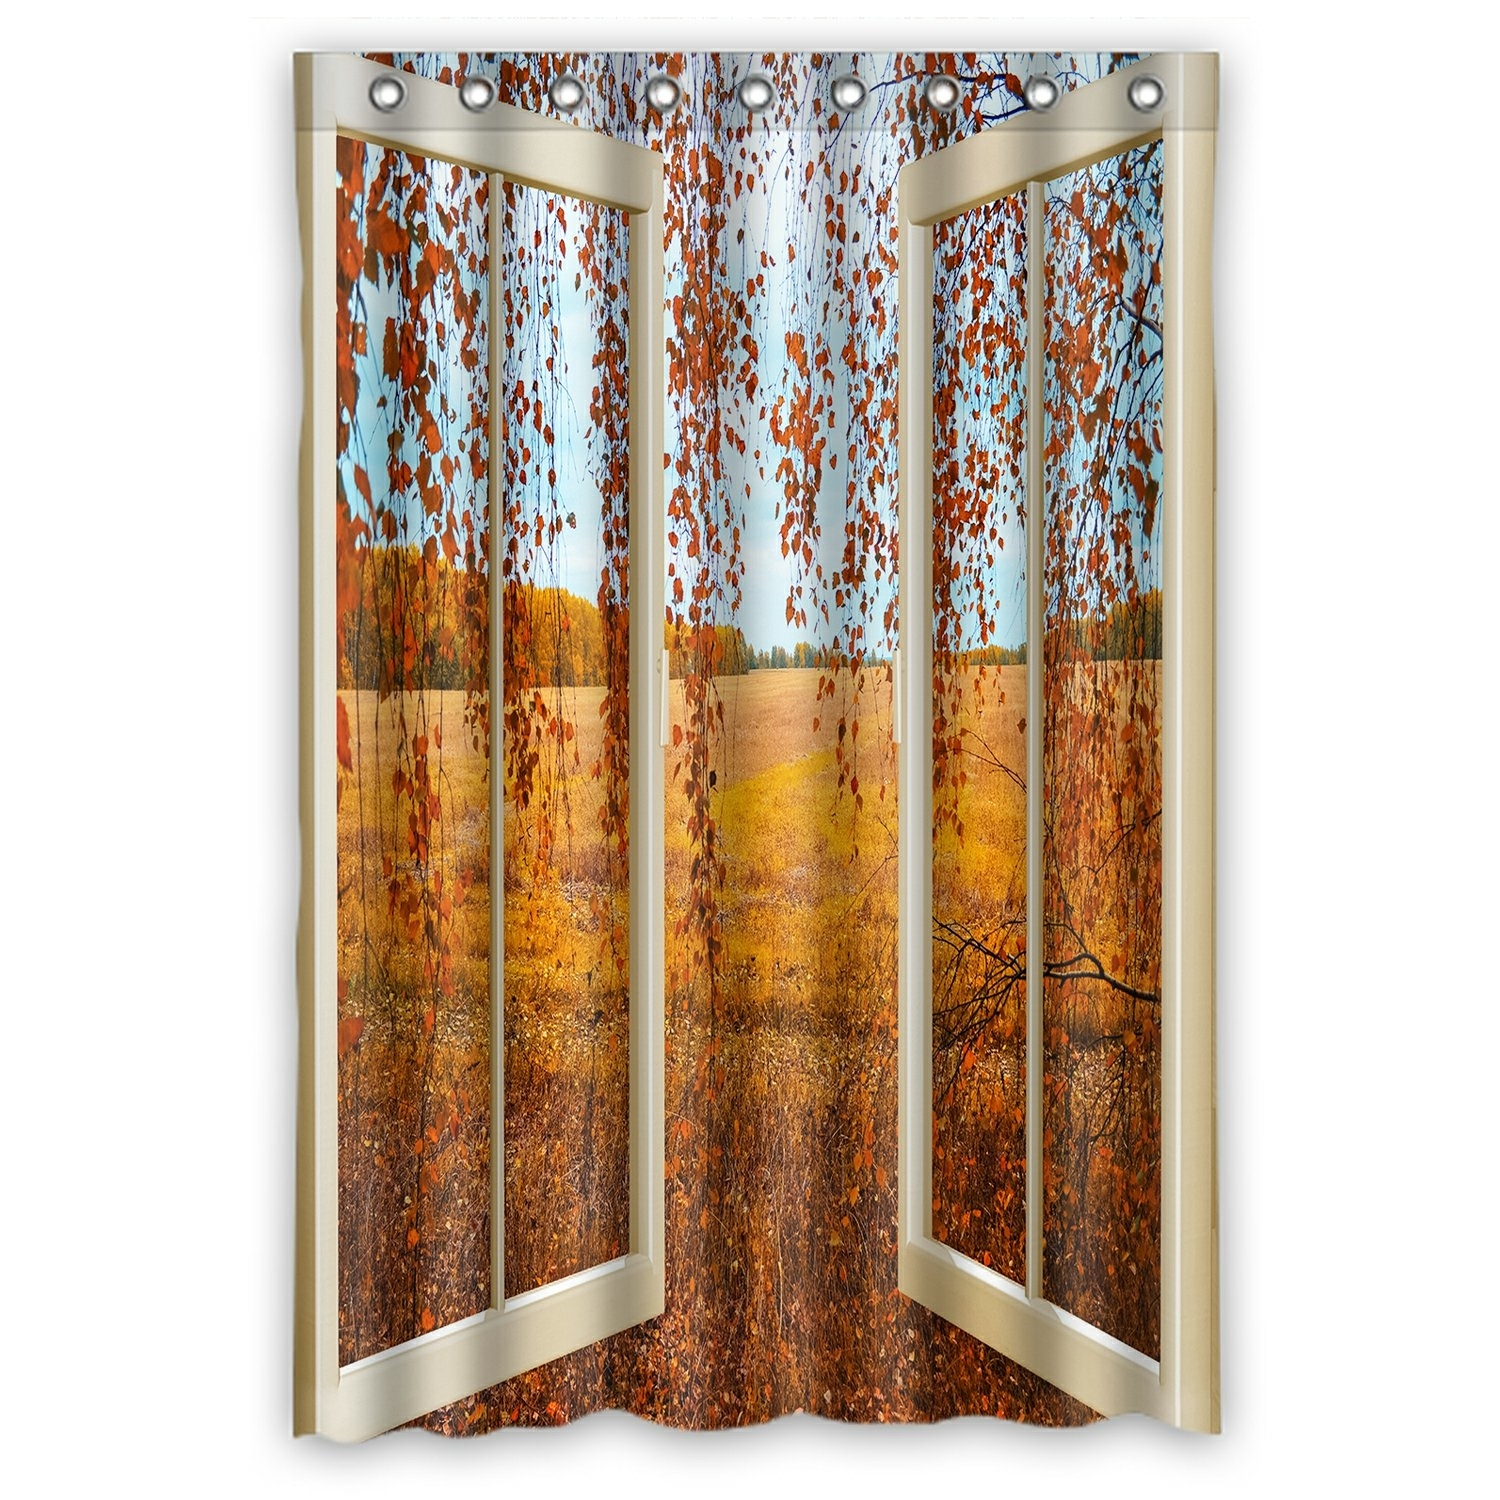 Scenery Shower Curtain, Open Window overlook the Autumn Forest Shower Curtain 48x72 inch